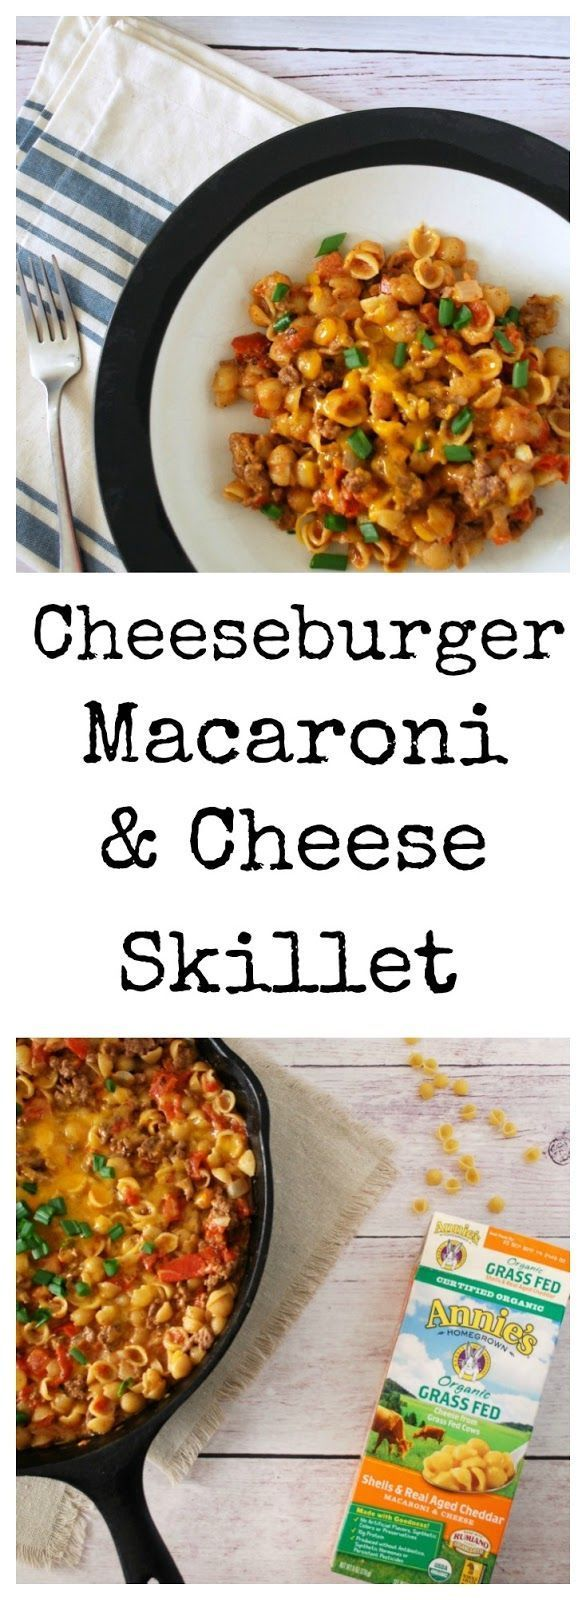 Cheeseburger Mac and Cheese Skillet is a family friendly meal that is ready in 30 minutes